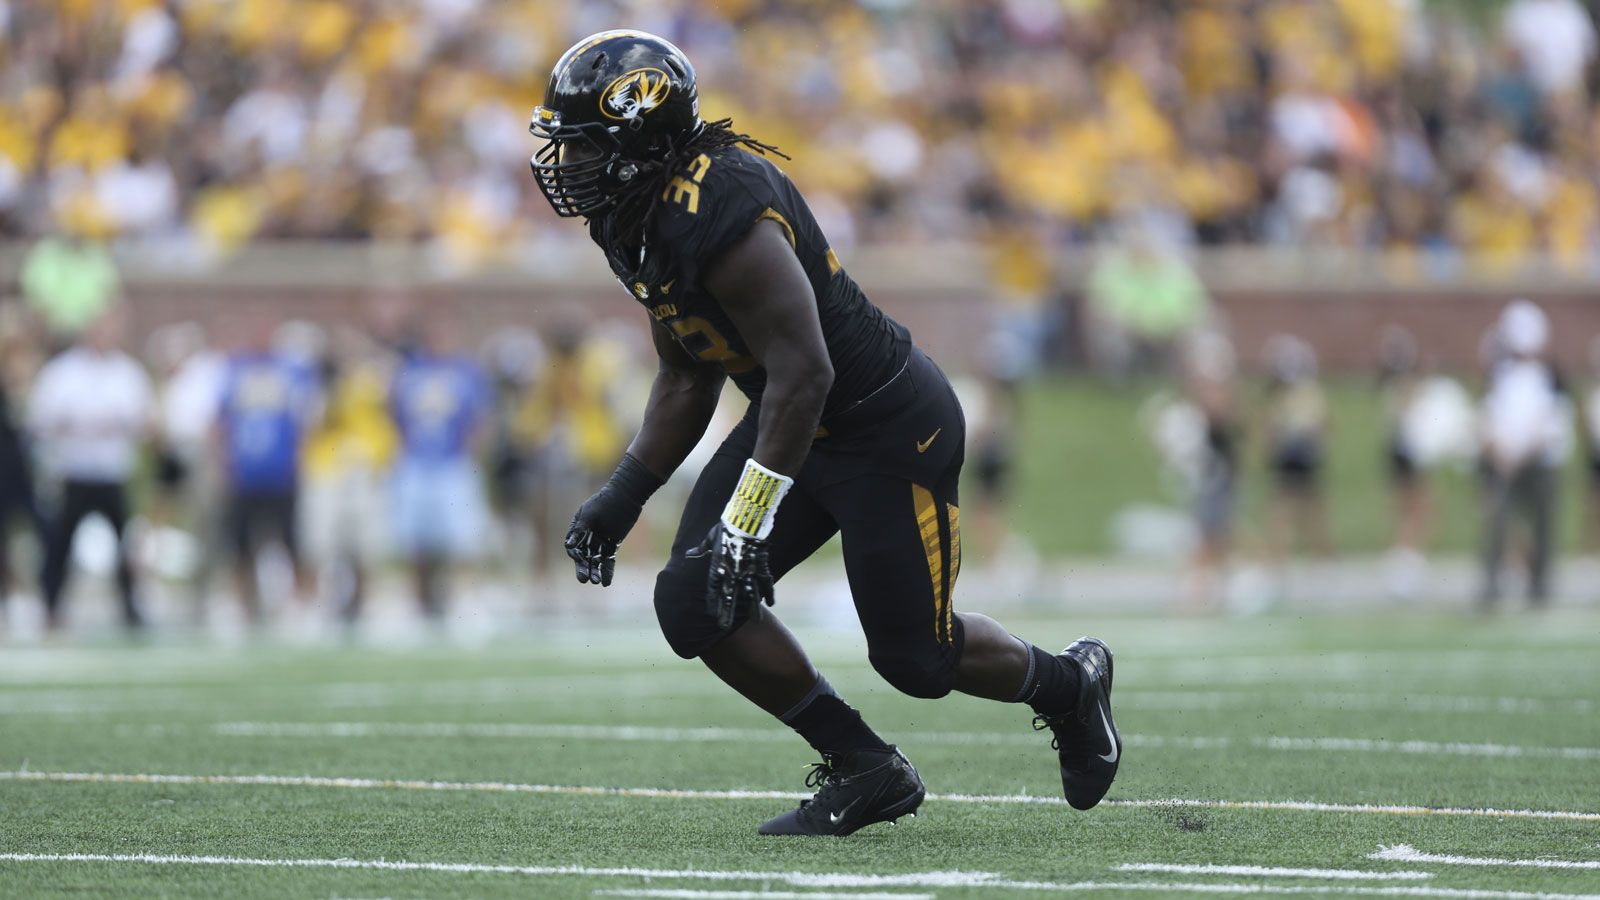 Mizzou's Golden named Defensive Player of the Week